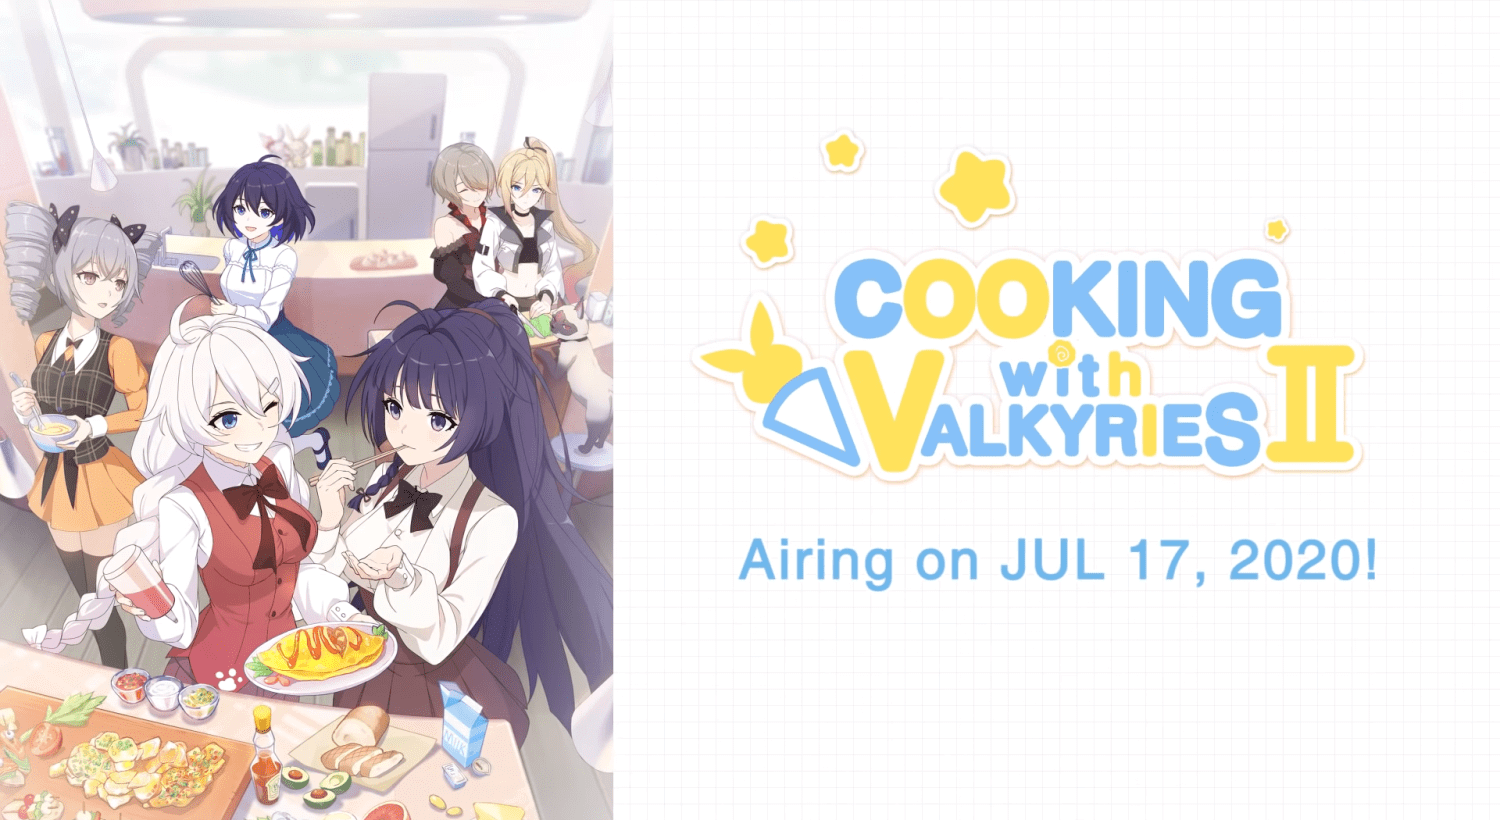 Cooking with Valkyries Season 2 Batch Episode 01-08 [END] Subtitle Indonesia